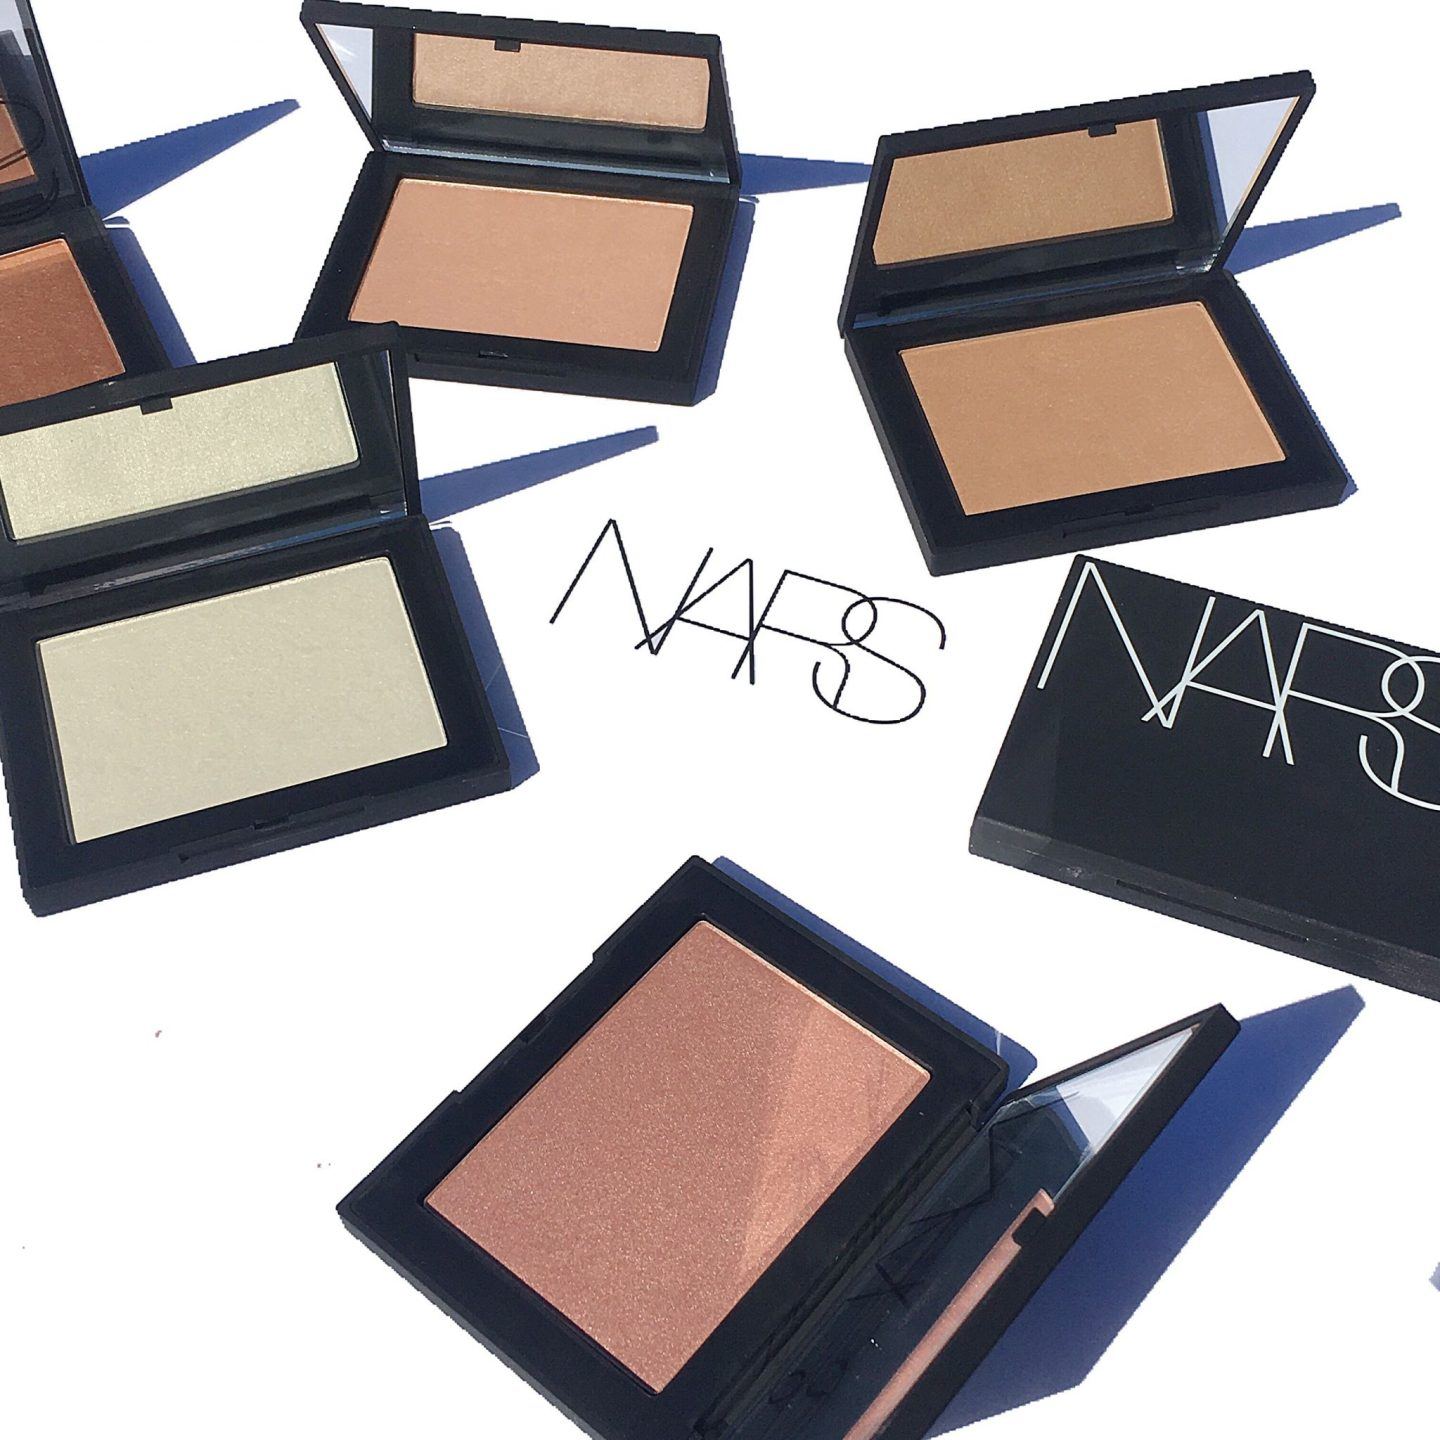 NARS NEW Highlighting Powders: Overview & Swatches